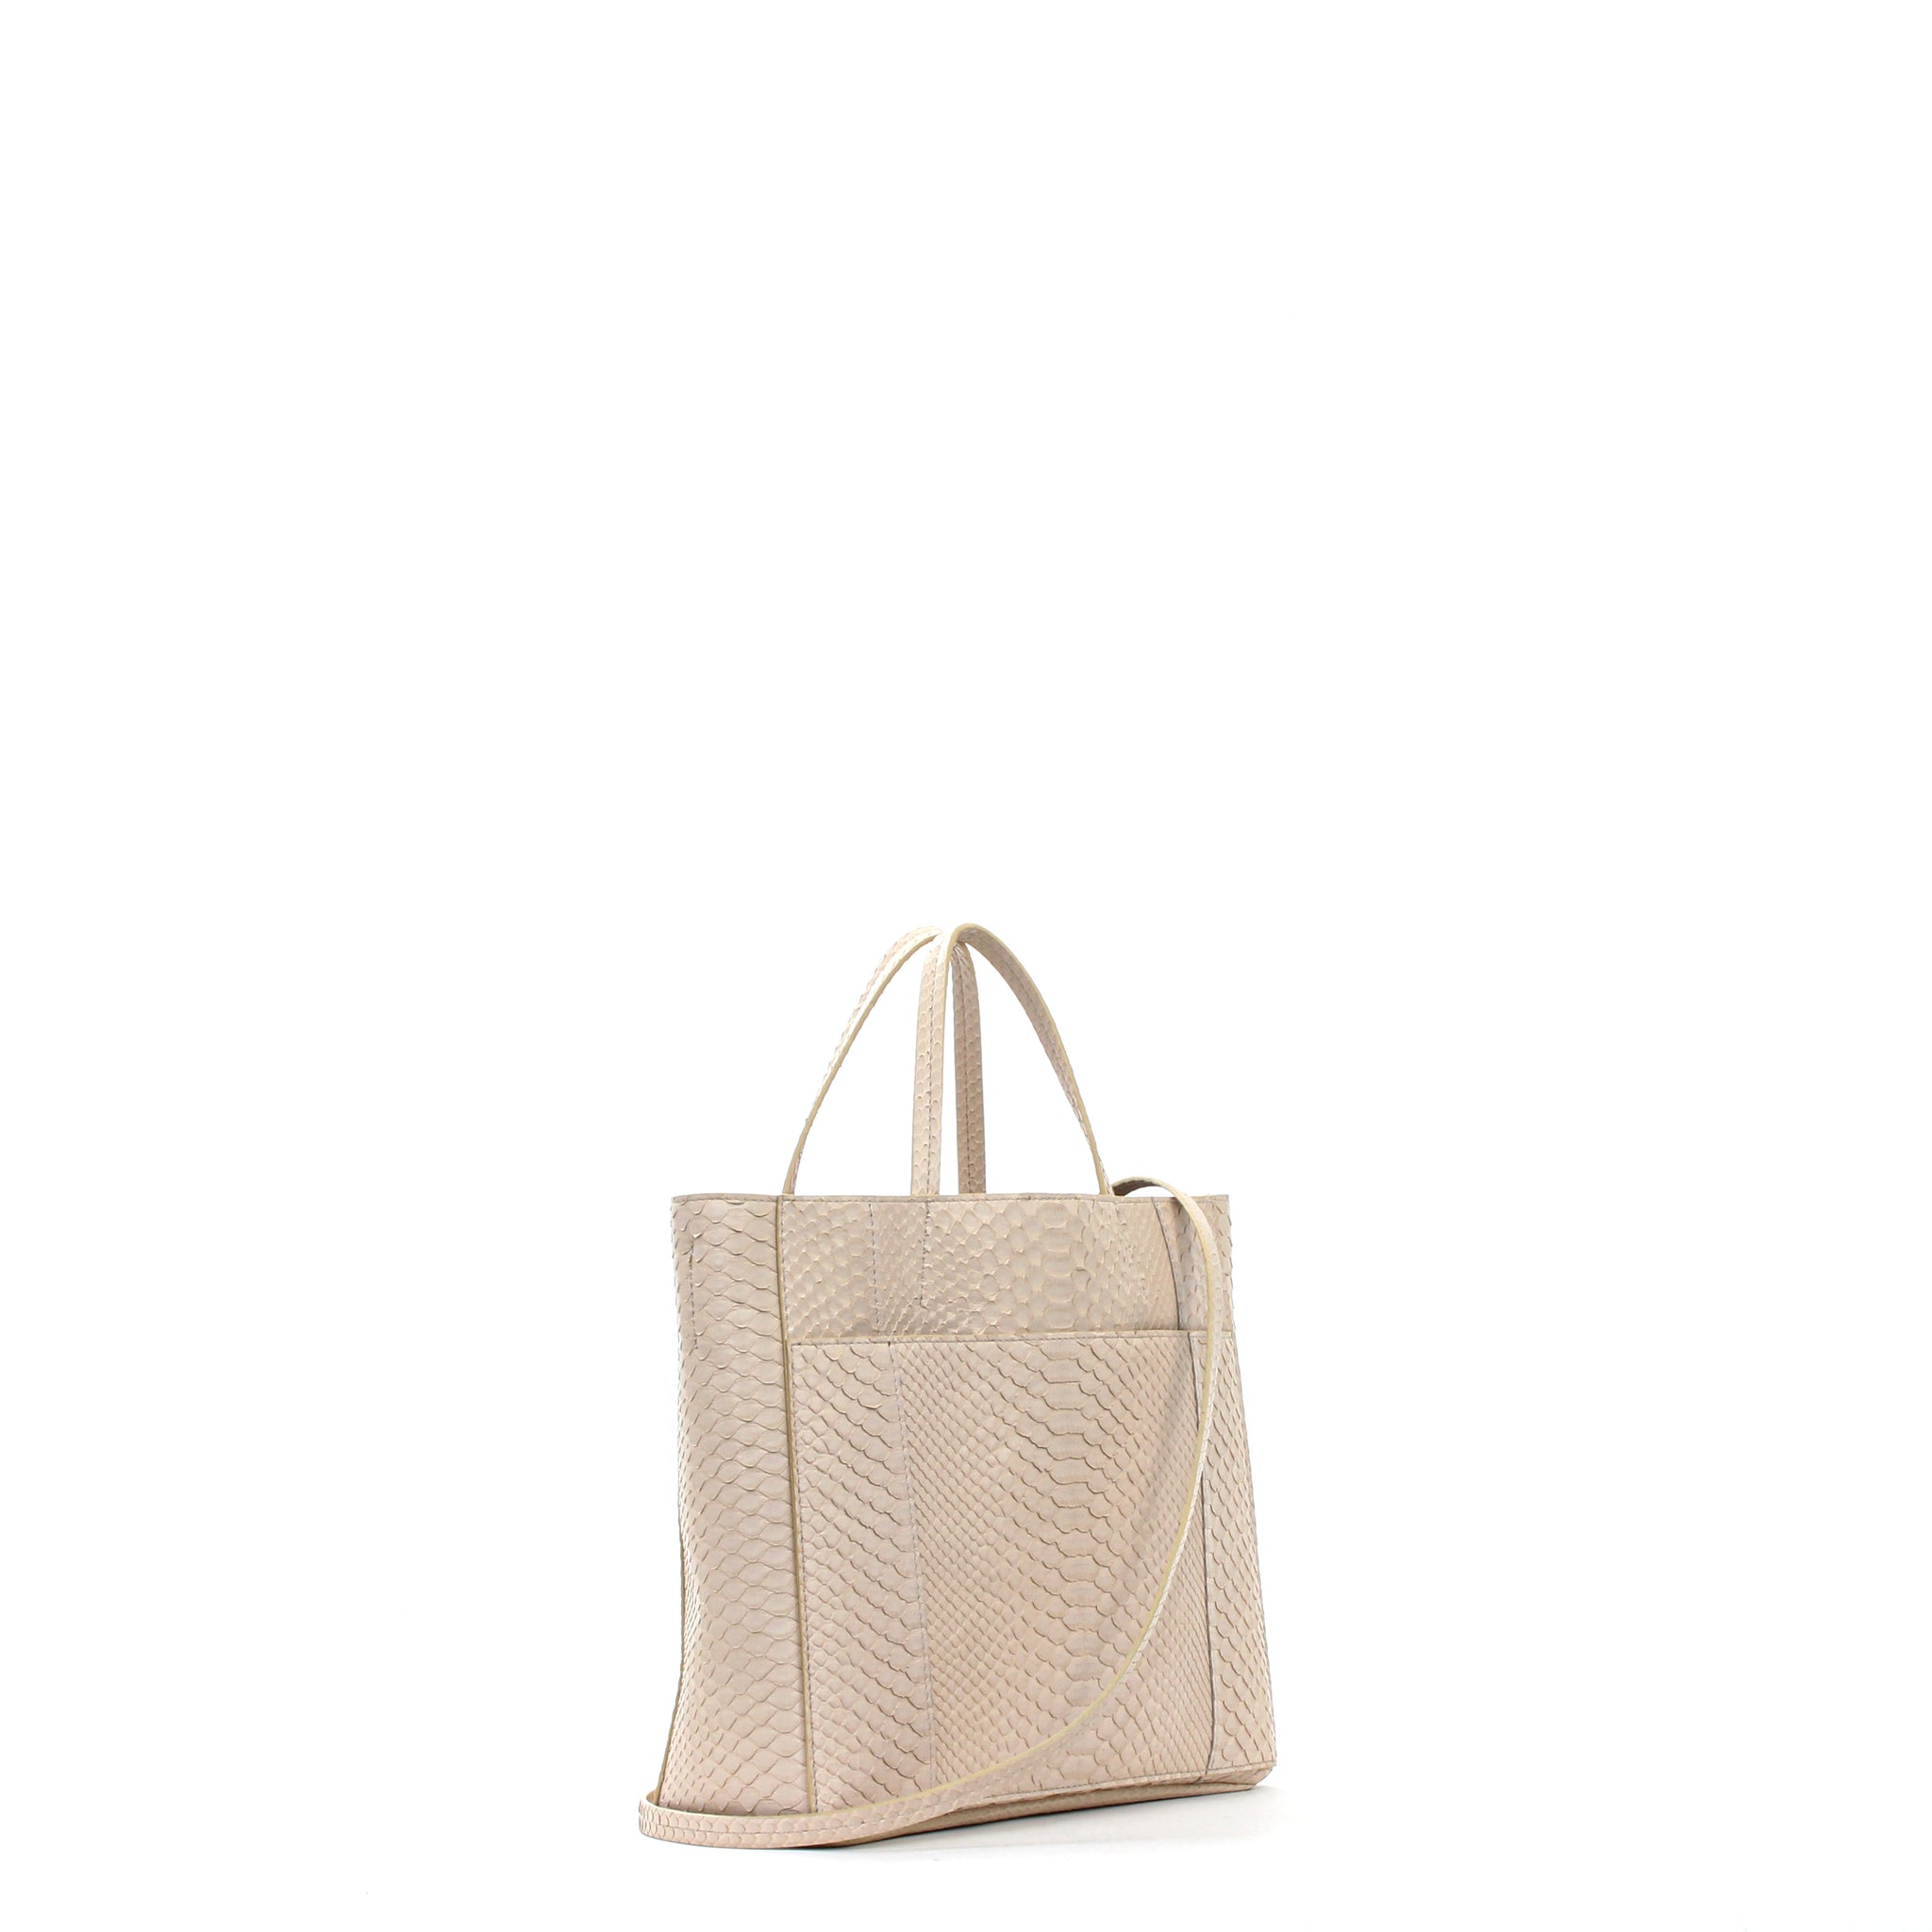 TOTE W FRONT POCKET X BODY DUNE PYTHON